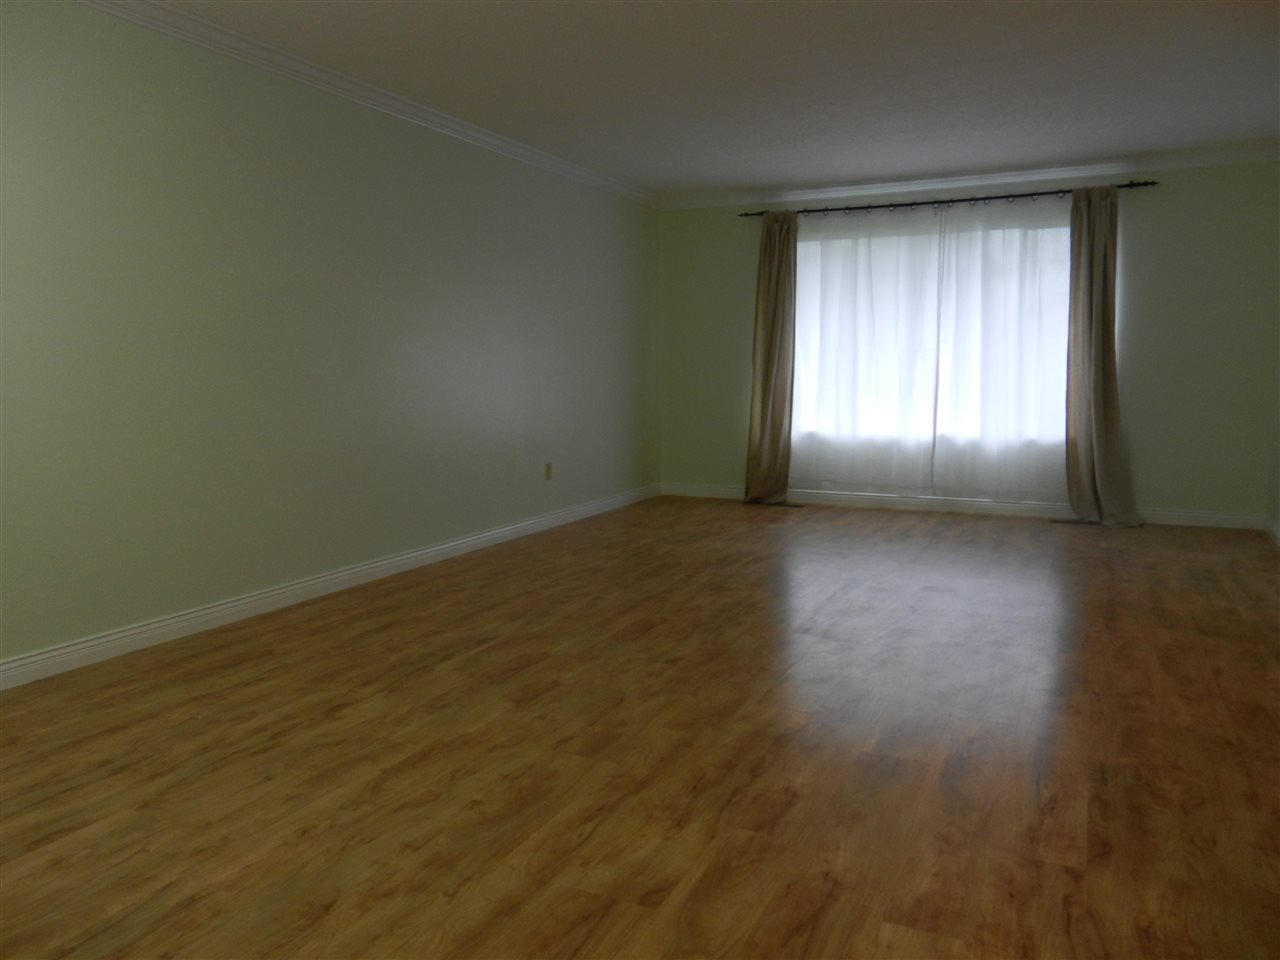 Photo 2: 3164 FREY Place in Port Coquitlam: Glenwood PQ House for sale : MLS® # R2113902